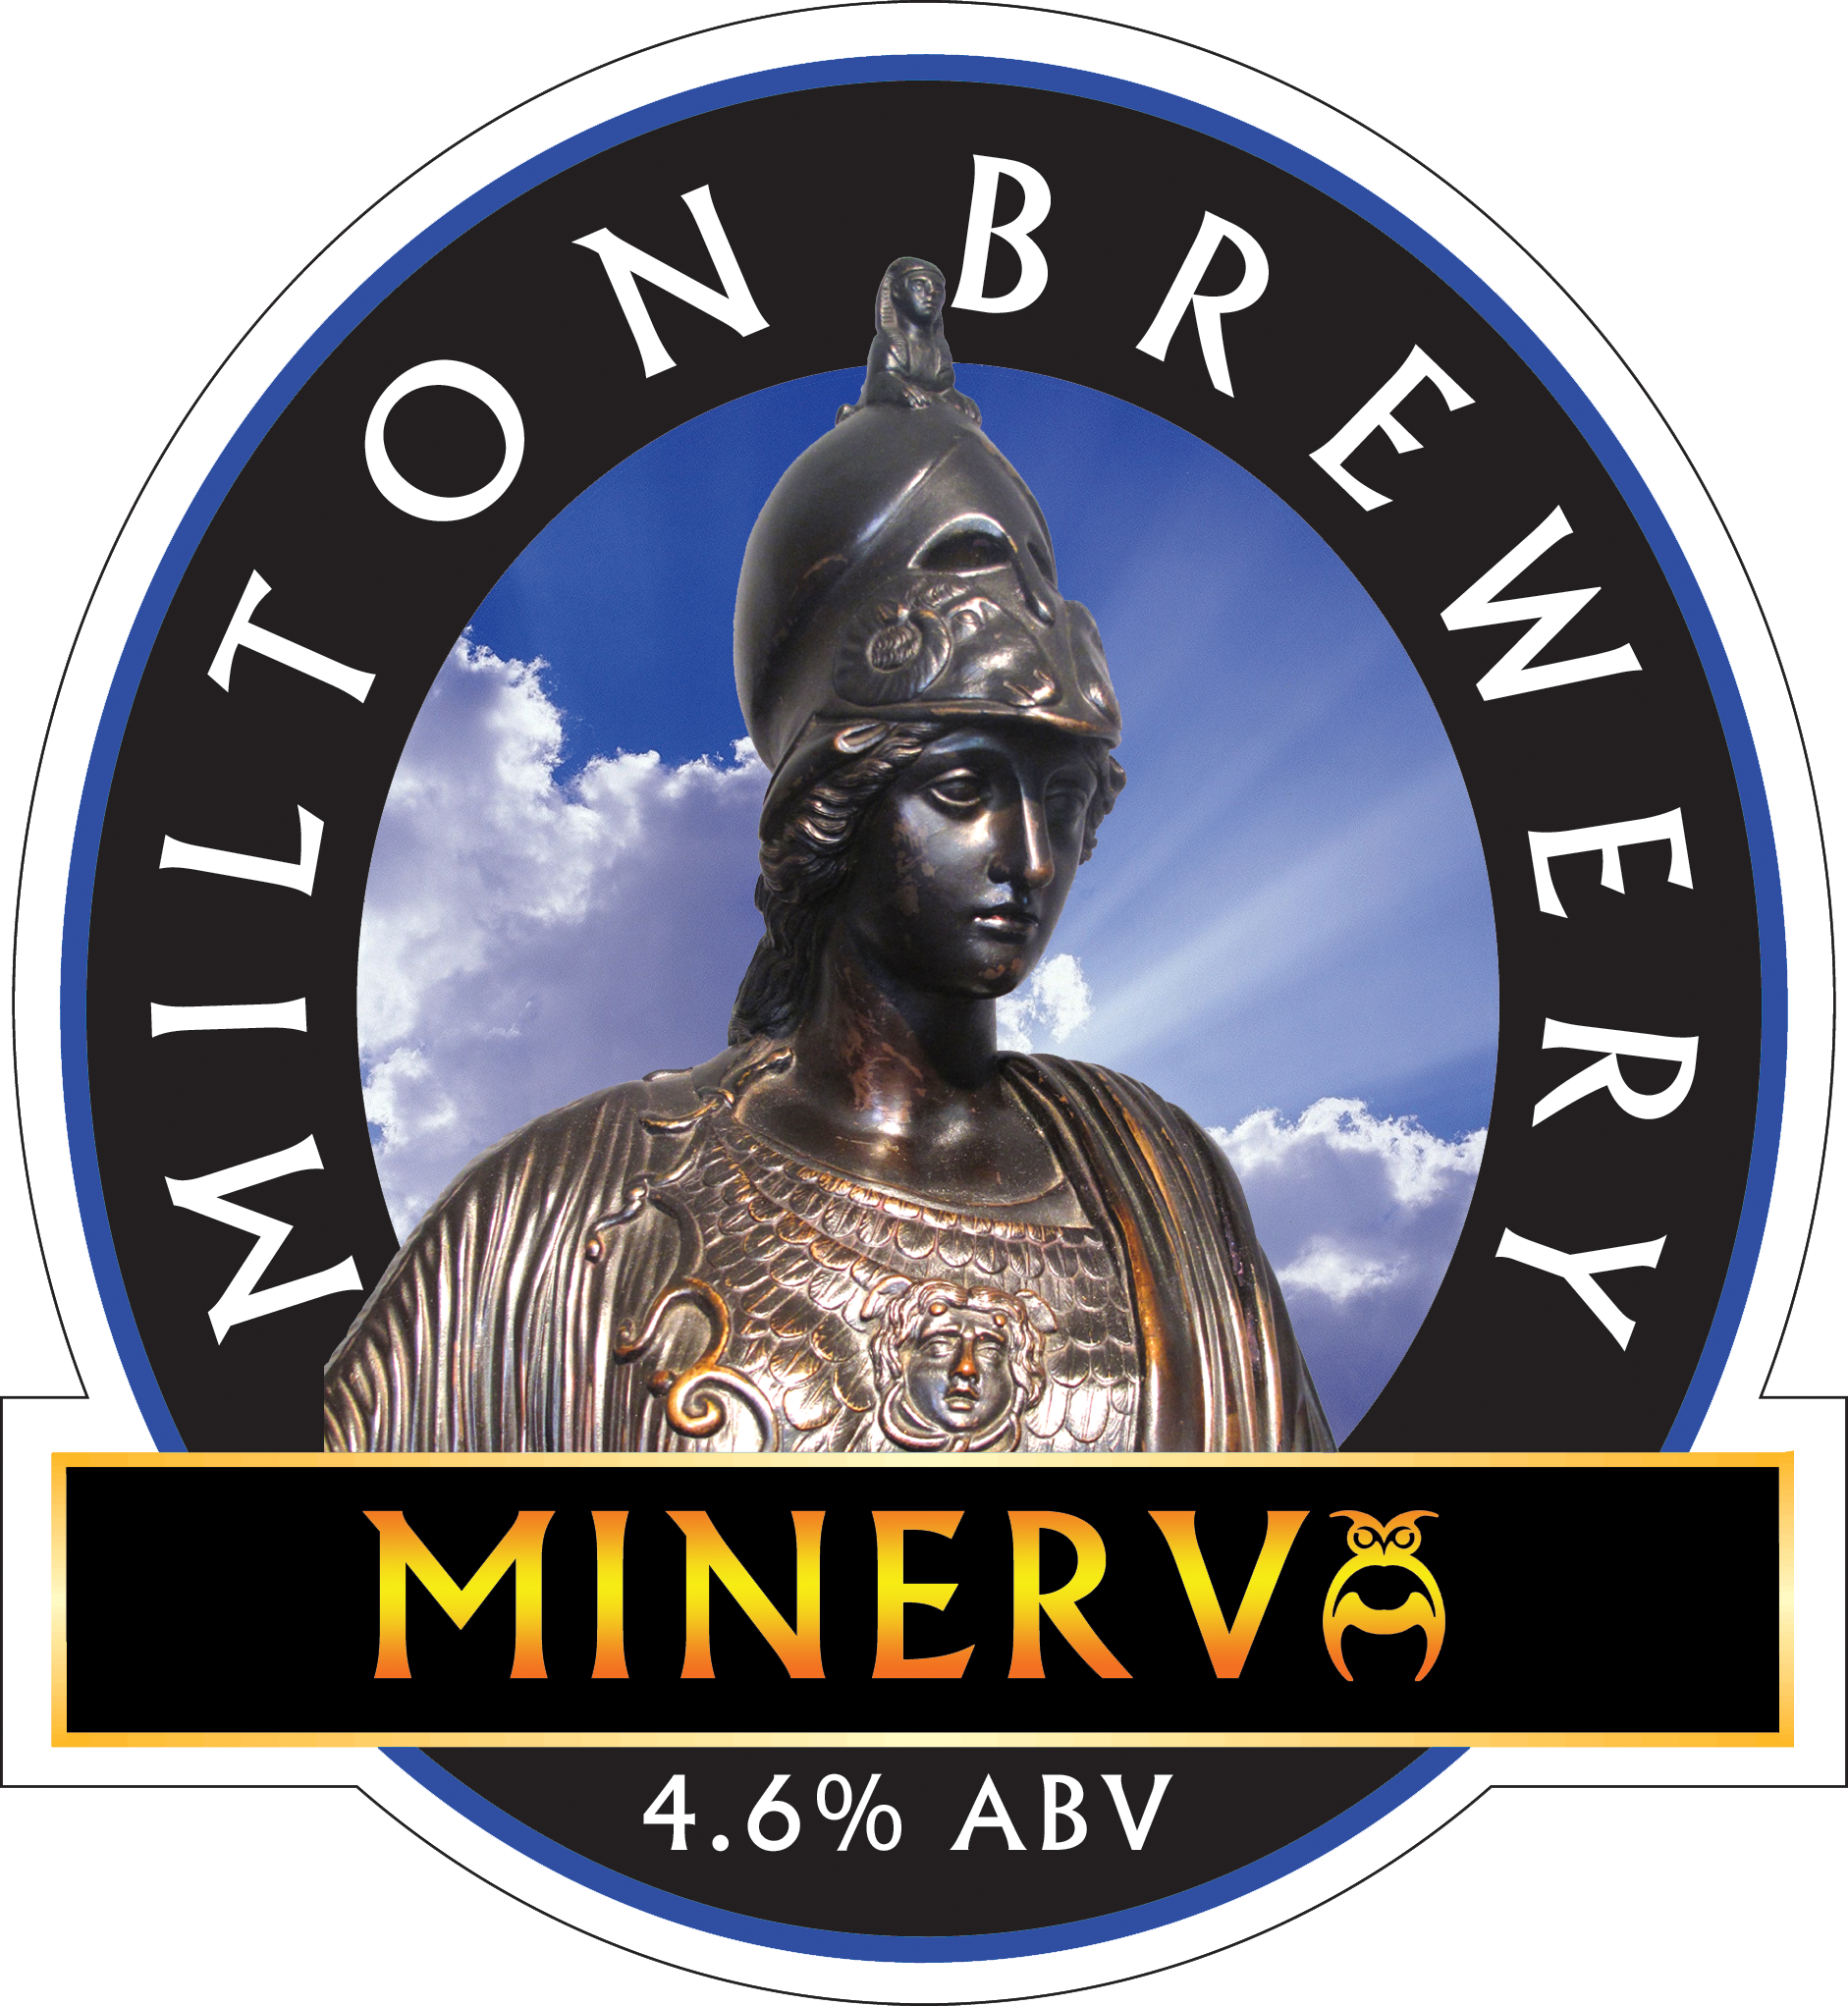 Image result for milton brewery minerva